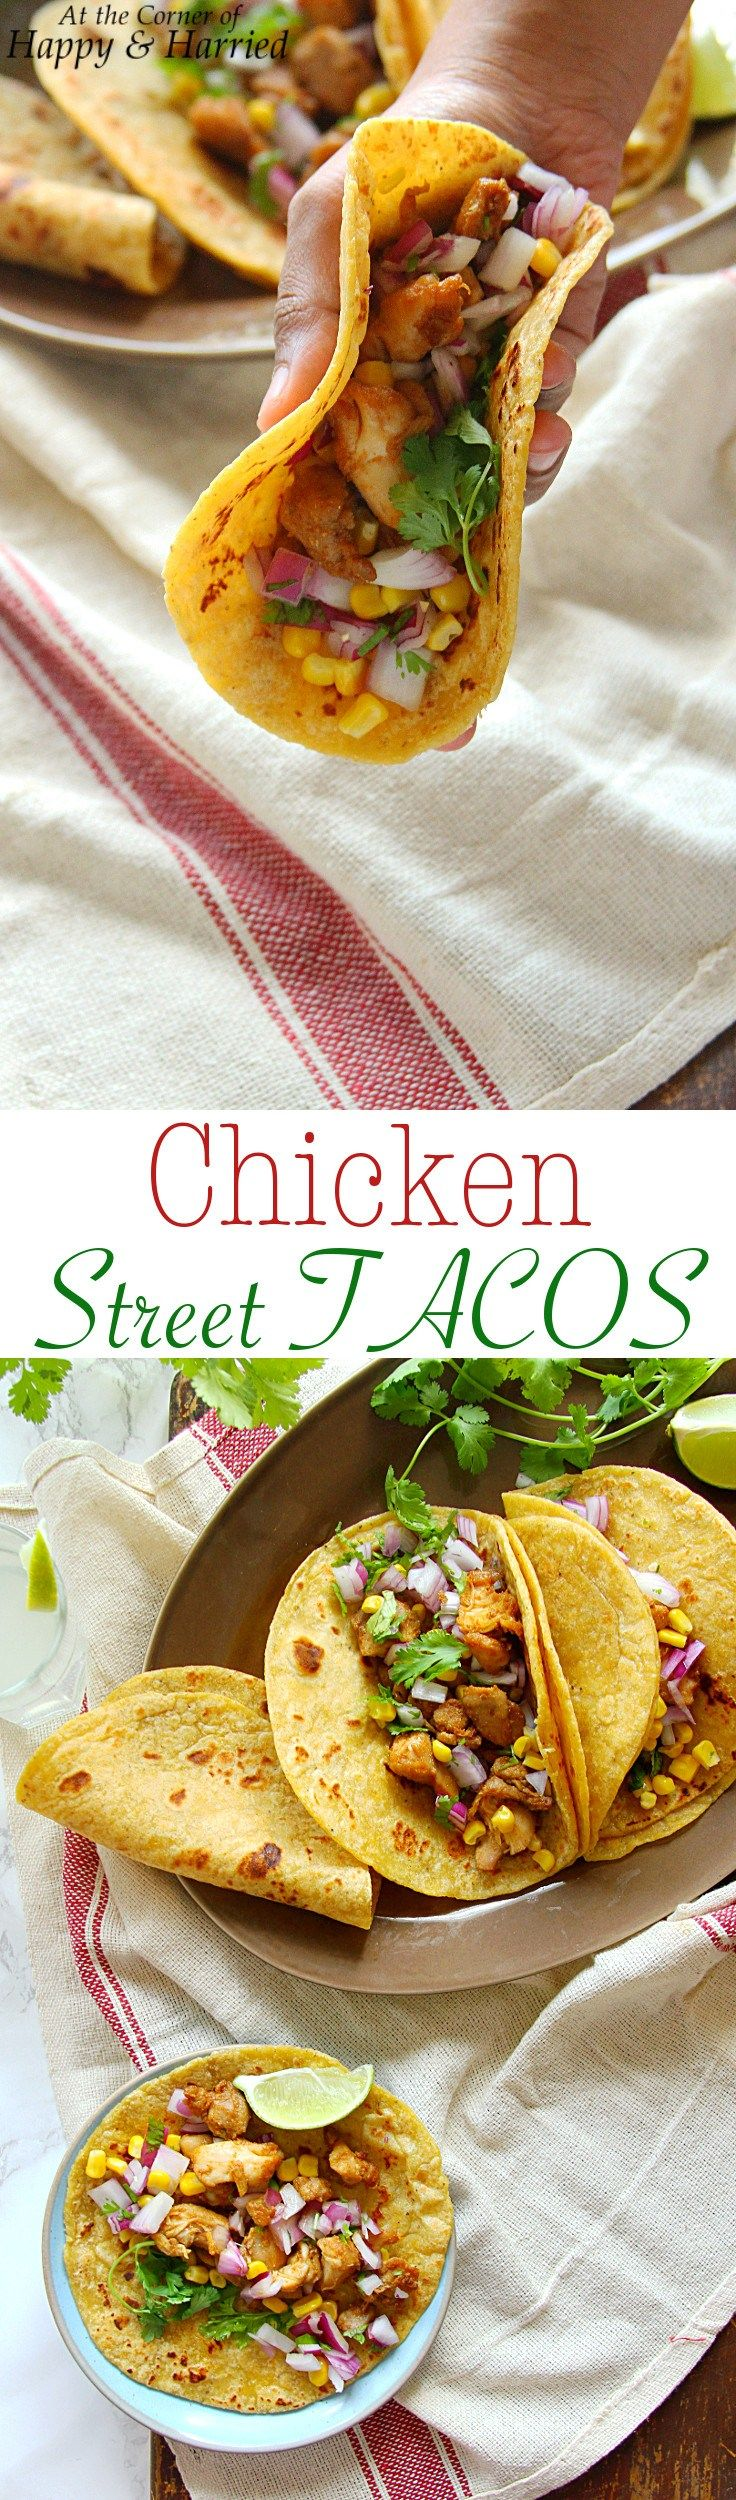 MEXICAN CHICKEN STREET TACOS - HAPPY&HARRIED